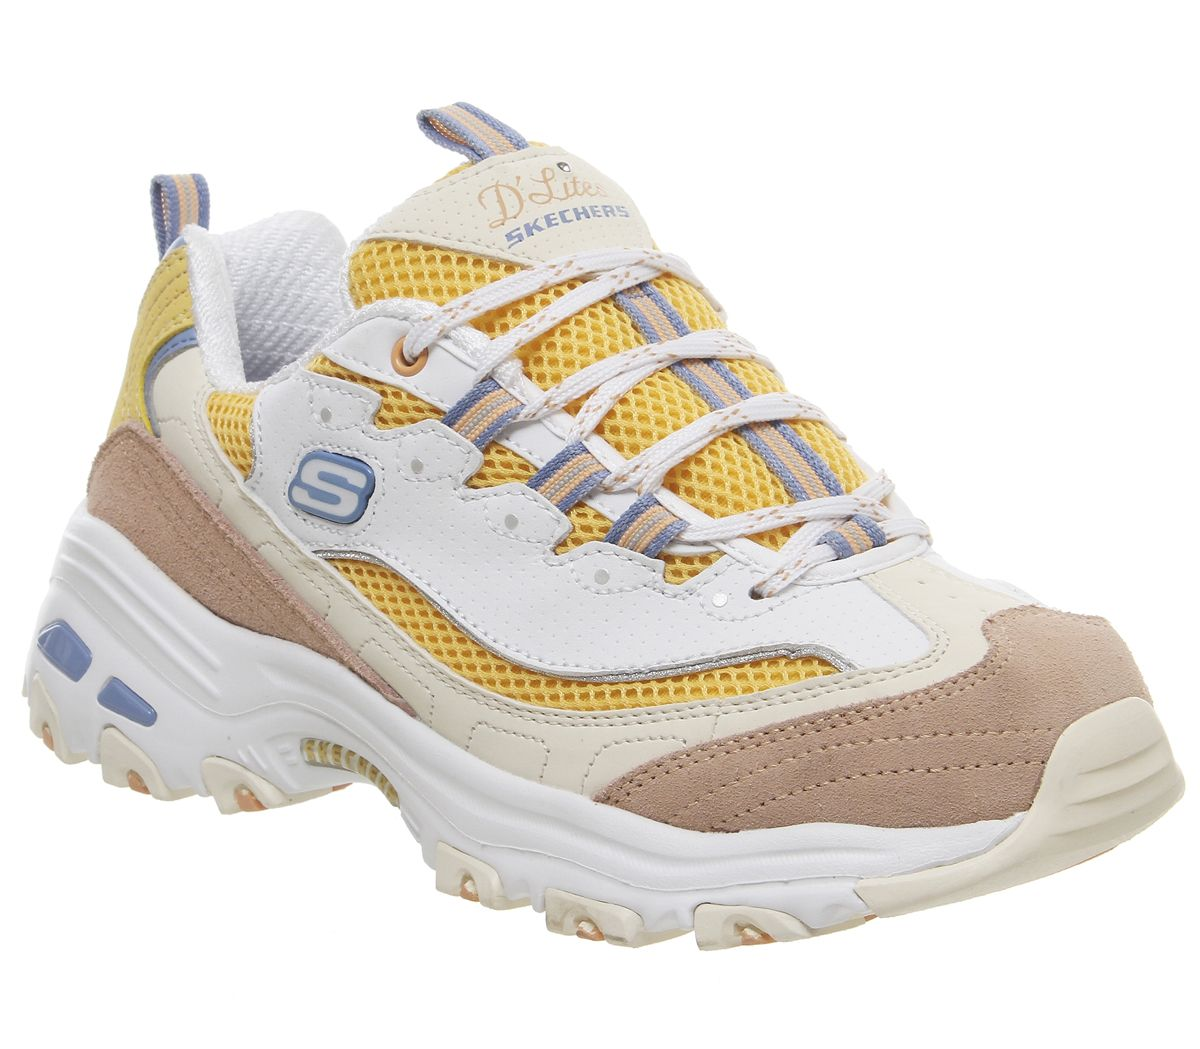 best service ab62e 6094f Skechers D lites White Yellow Pink - Hers trainers